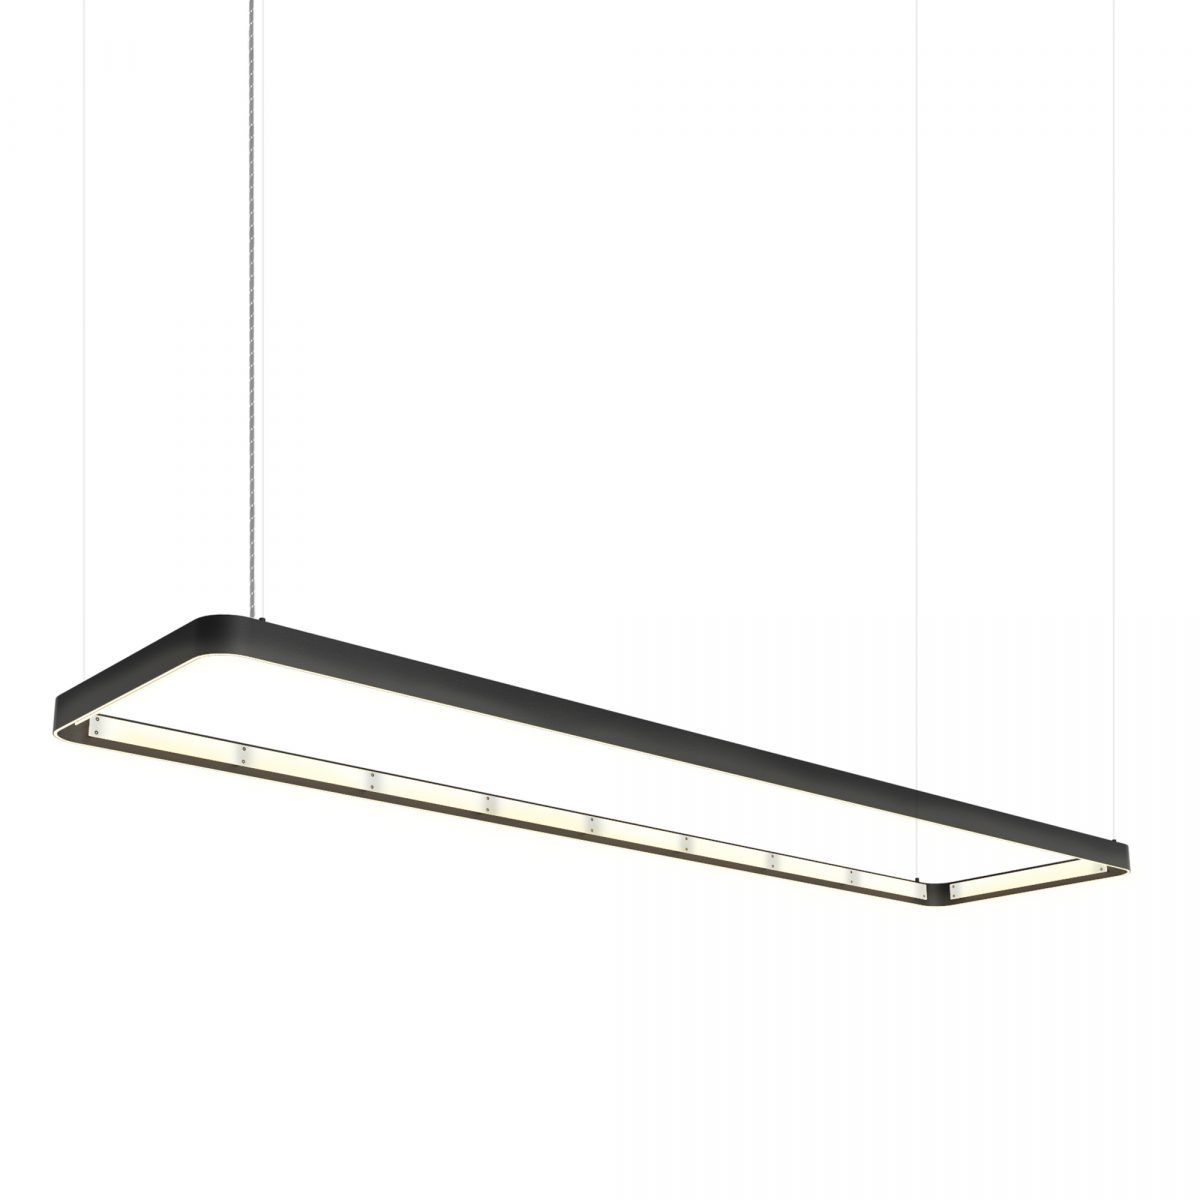 JSPR Eden Deco 50×200 Black Rectangle